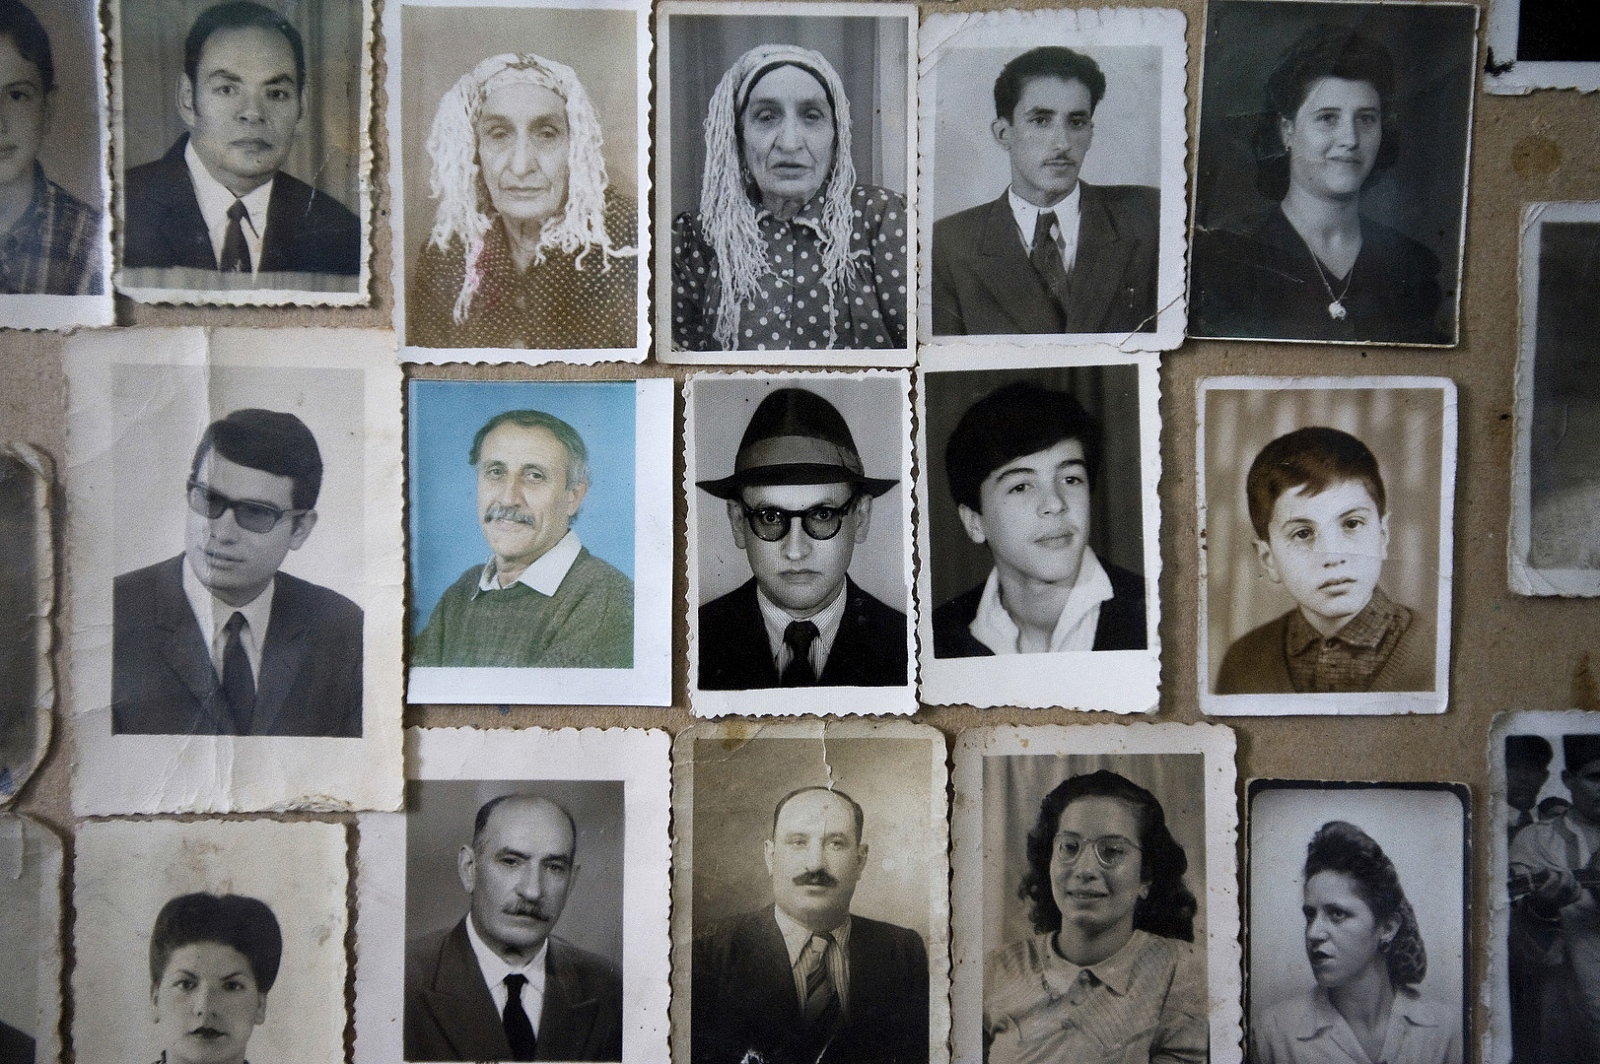 2009- A collection of head shots of former Jewish residents of Fez are displayed in a small museum located in the Jewish Cemetery. Fez was the first city in Morocco with a Mellah or Jewish Quarter which was established in 1438 adjacent to the Royal Palace.